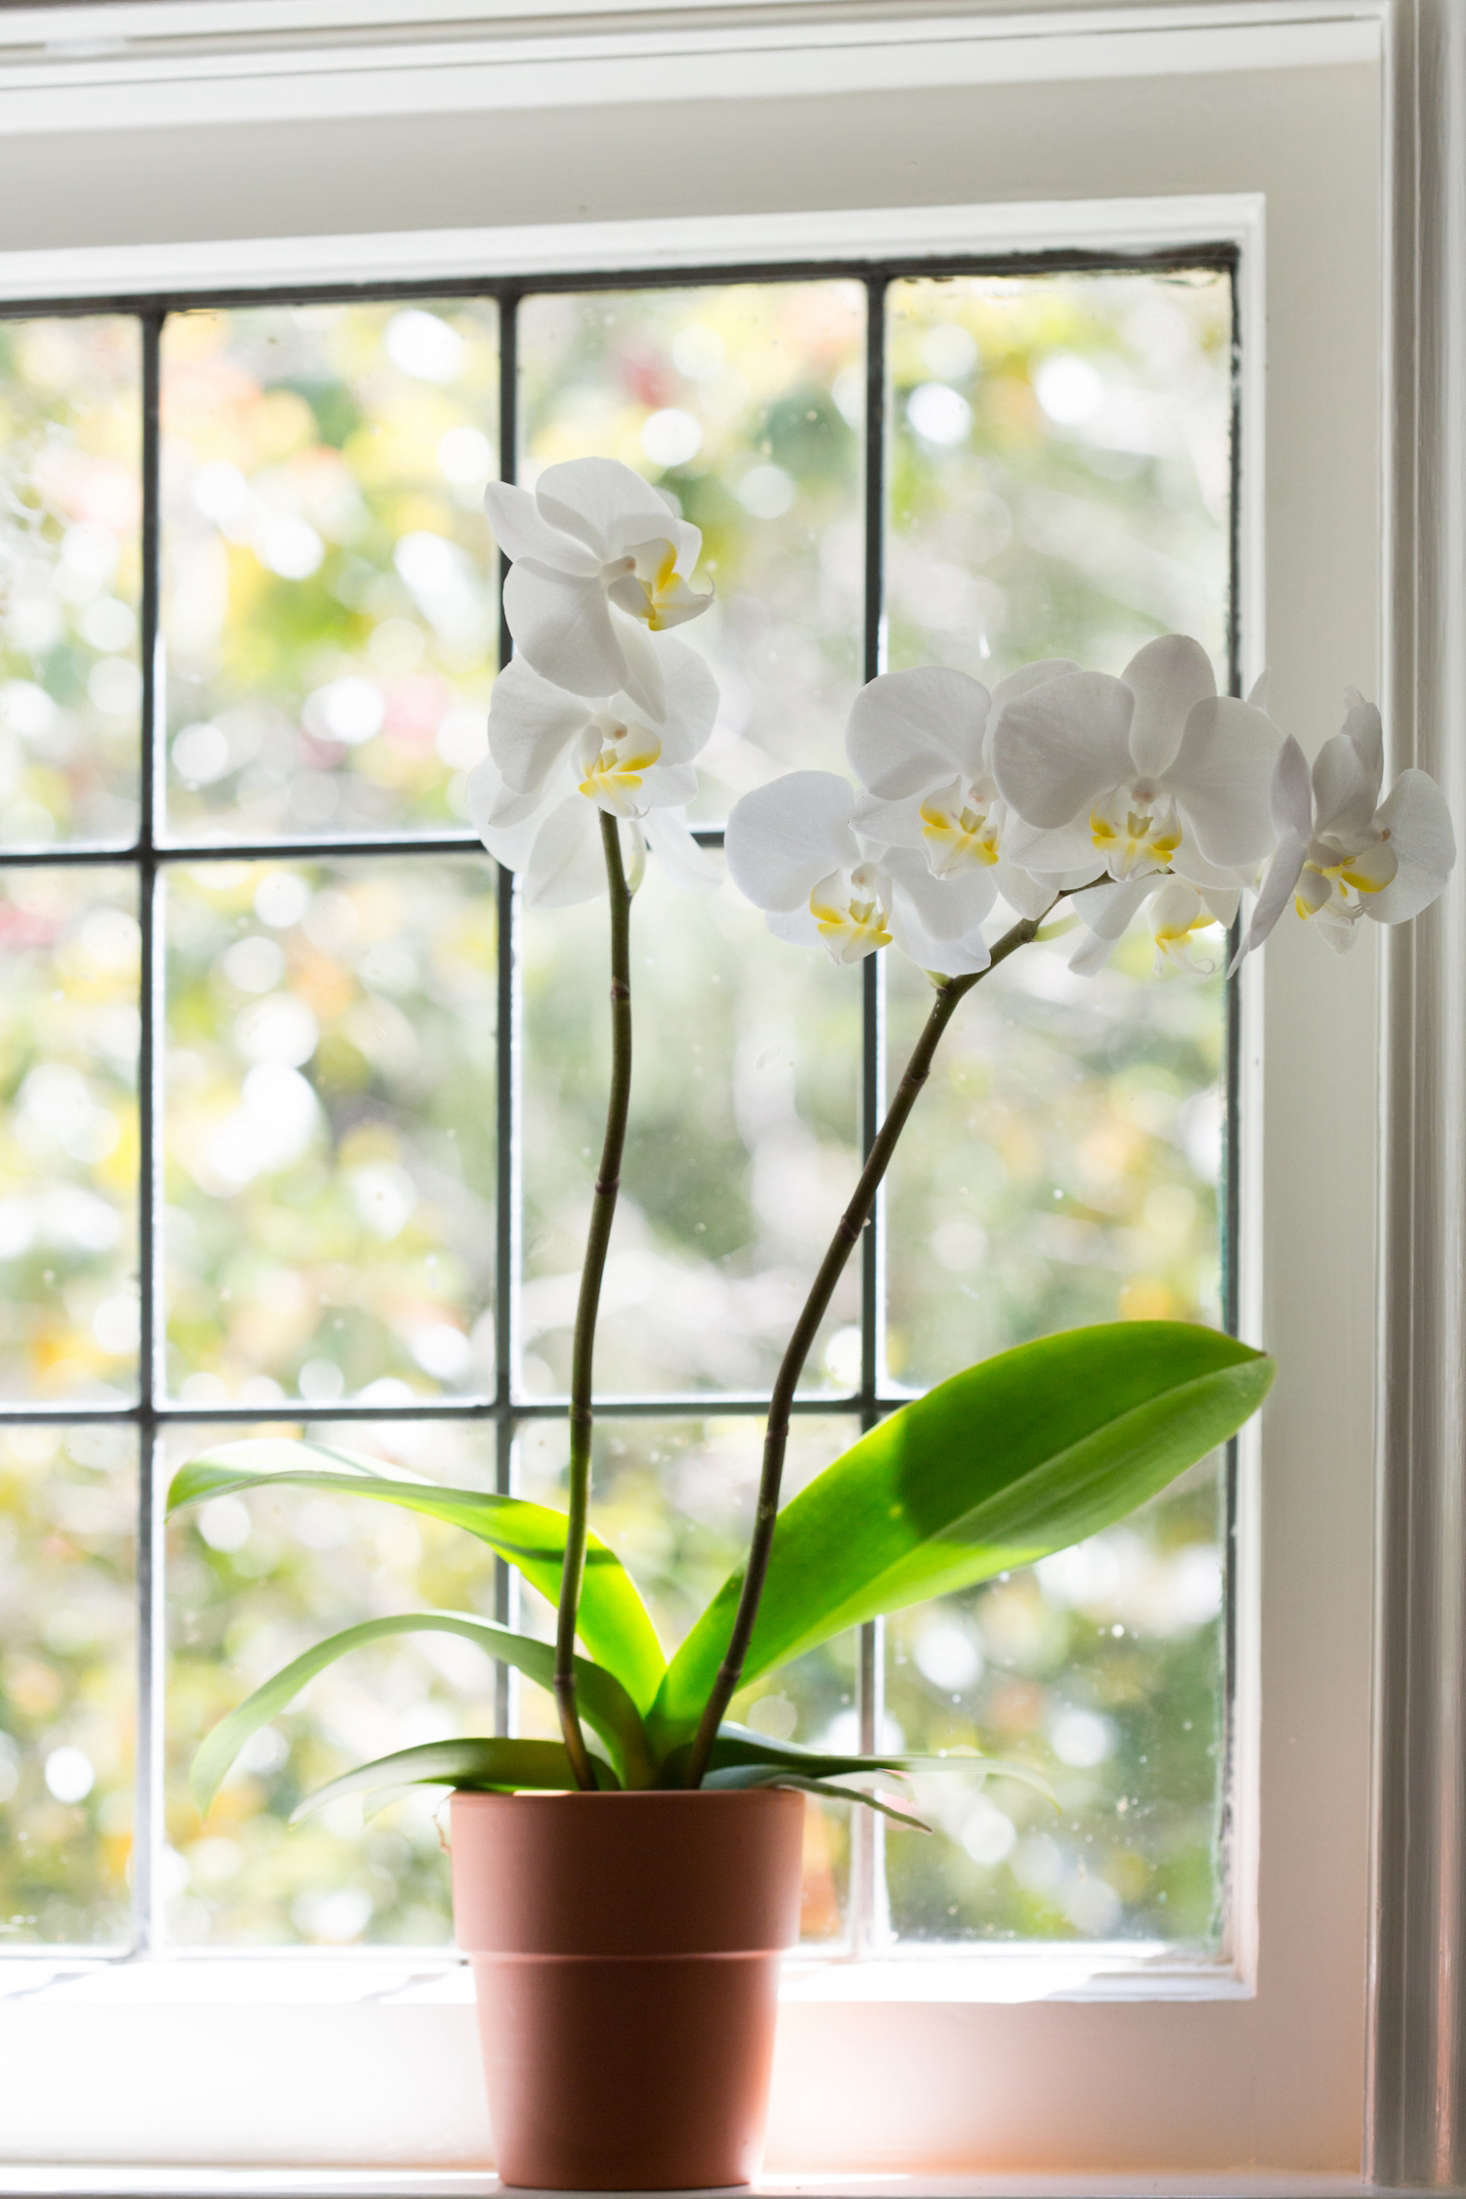 For a similar flower, aWhite Moth Orchid in a five-inch cachepot is $59 from White Flower Farm.